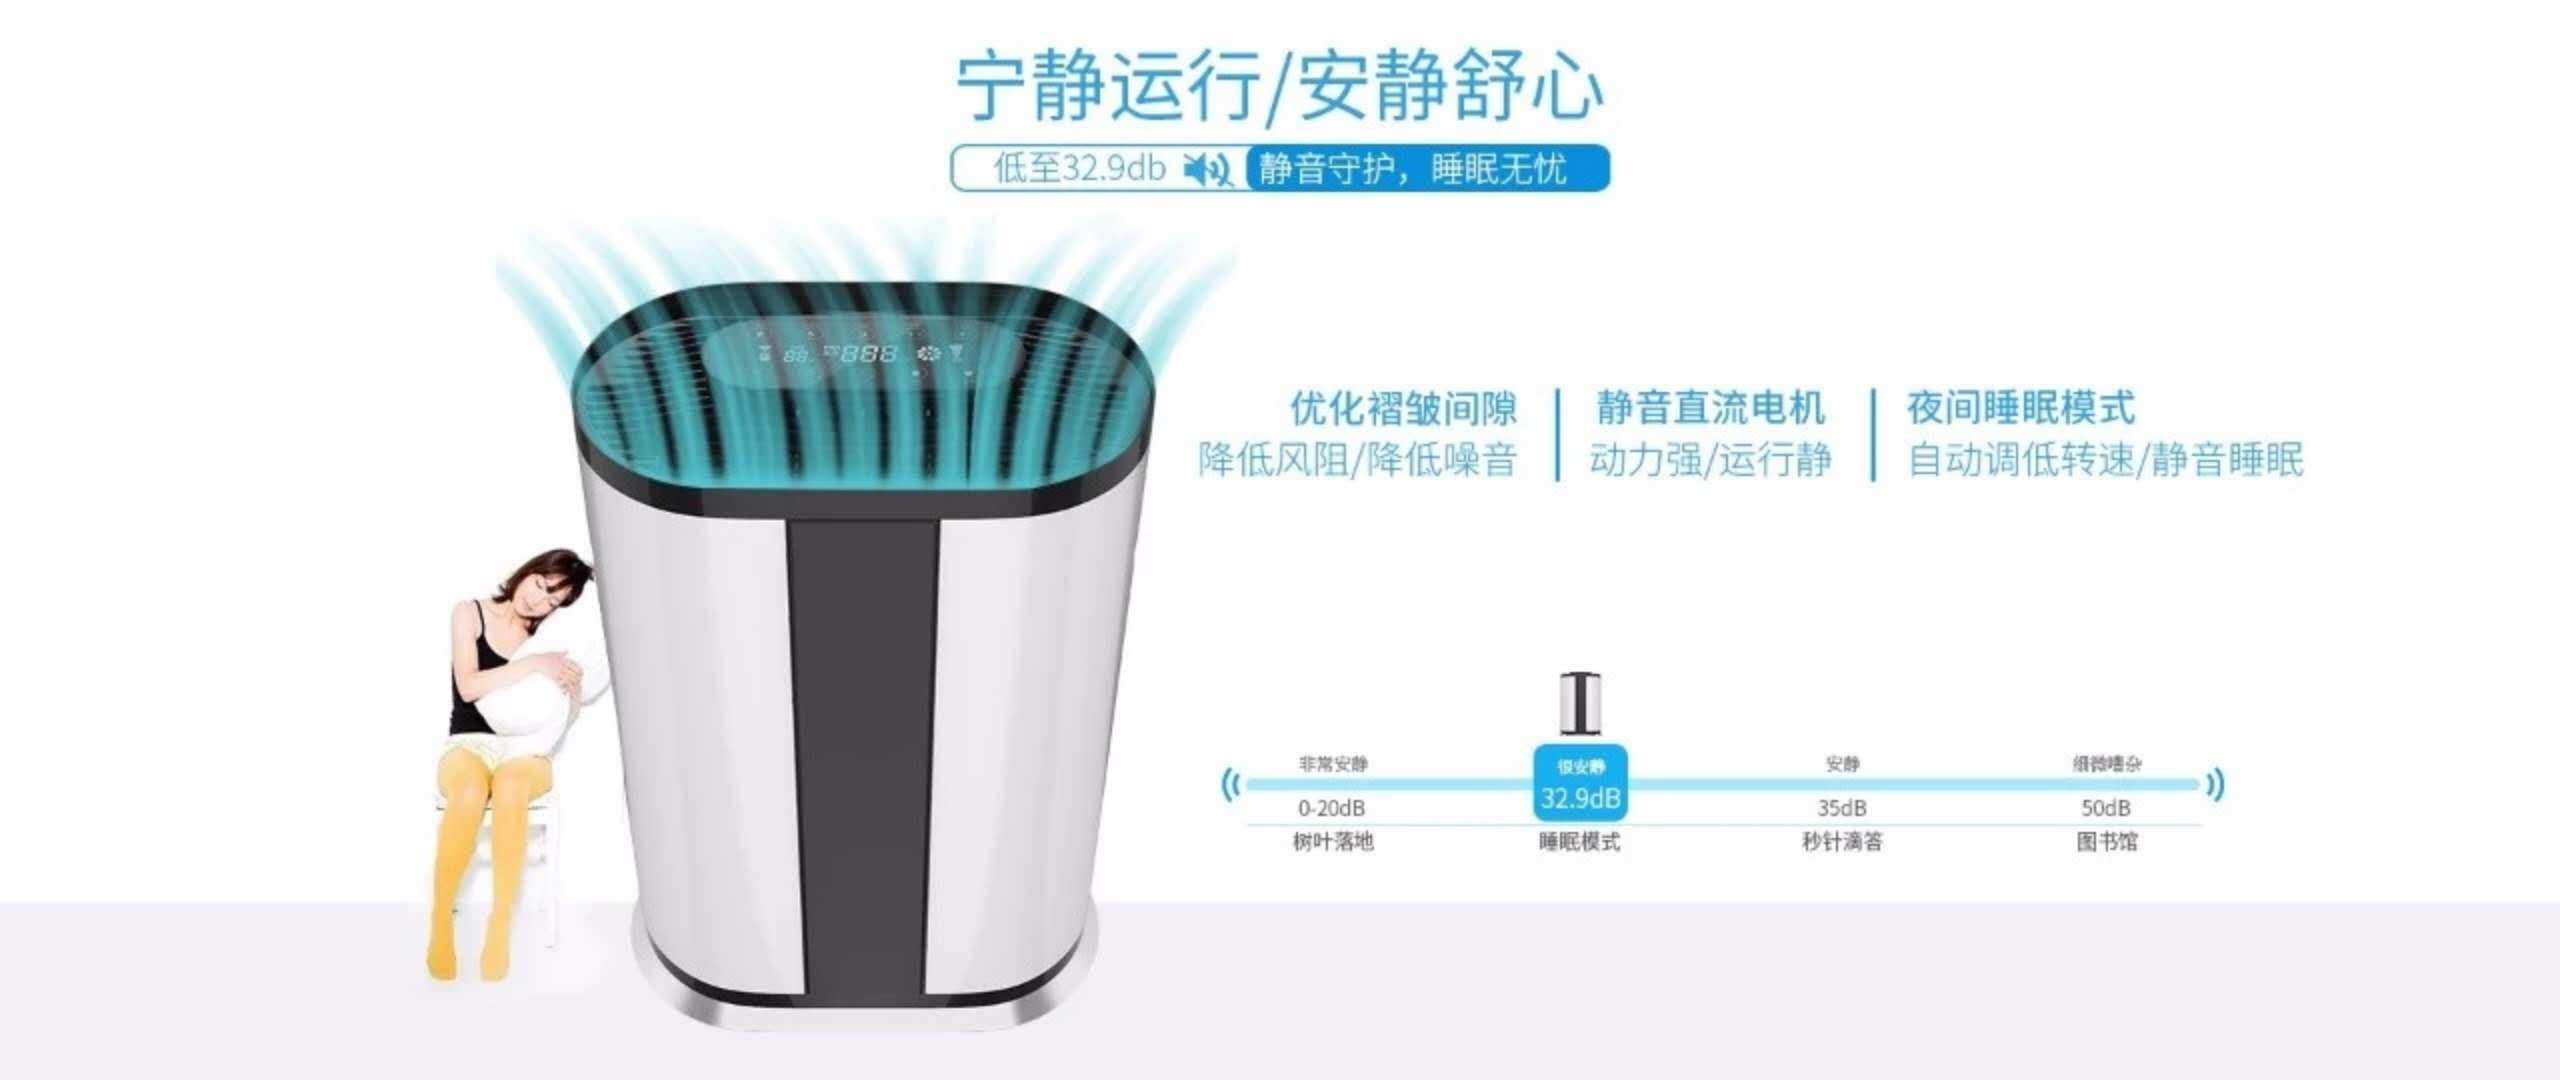 olansi k09 air purifier